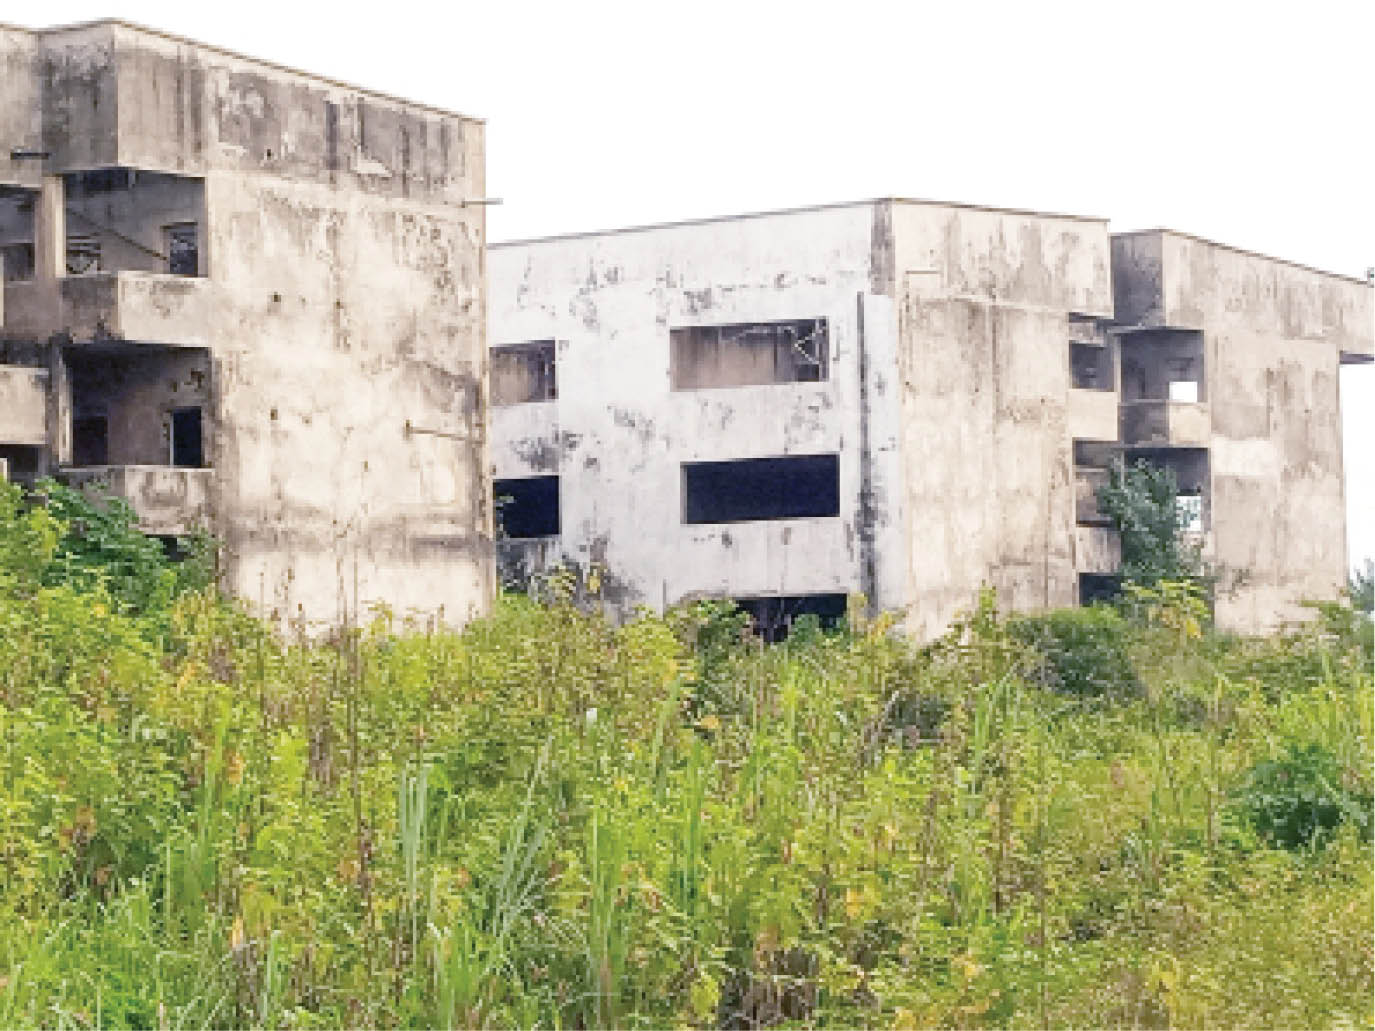 Over-grown weeds is a common feature of the abandoned schools like this one in Isara-Remo